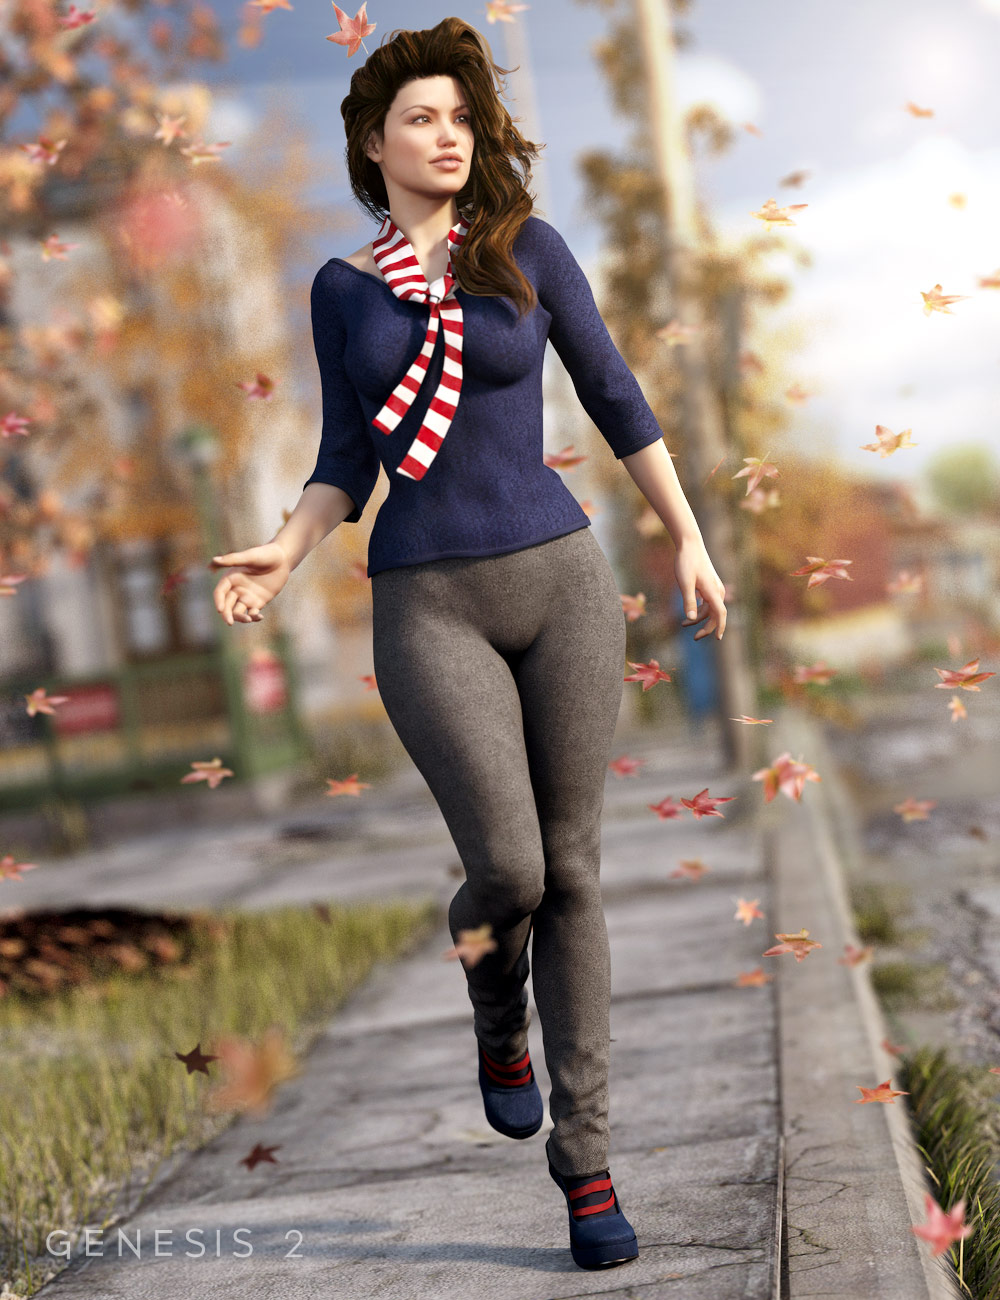 Autumn Afternoon Outfit for Genesis 2 Female(s) by: Barbara BrundonSarsa, 3D Models by Daz 3D